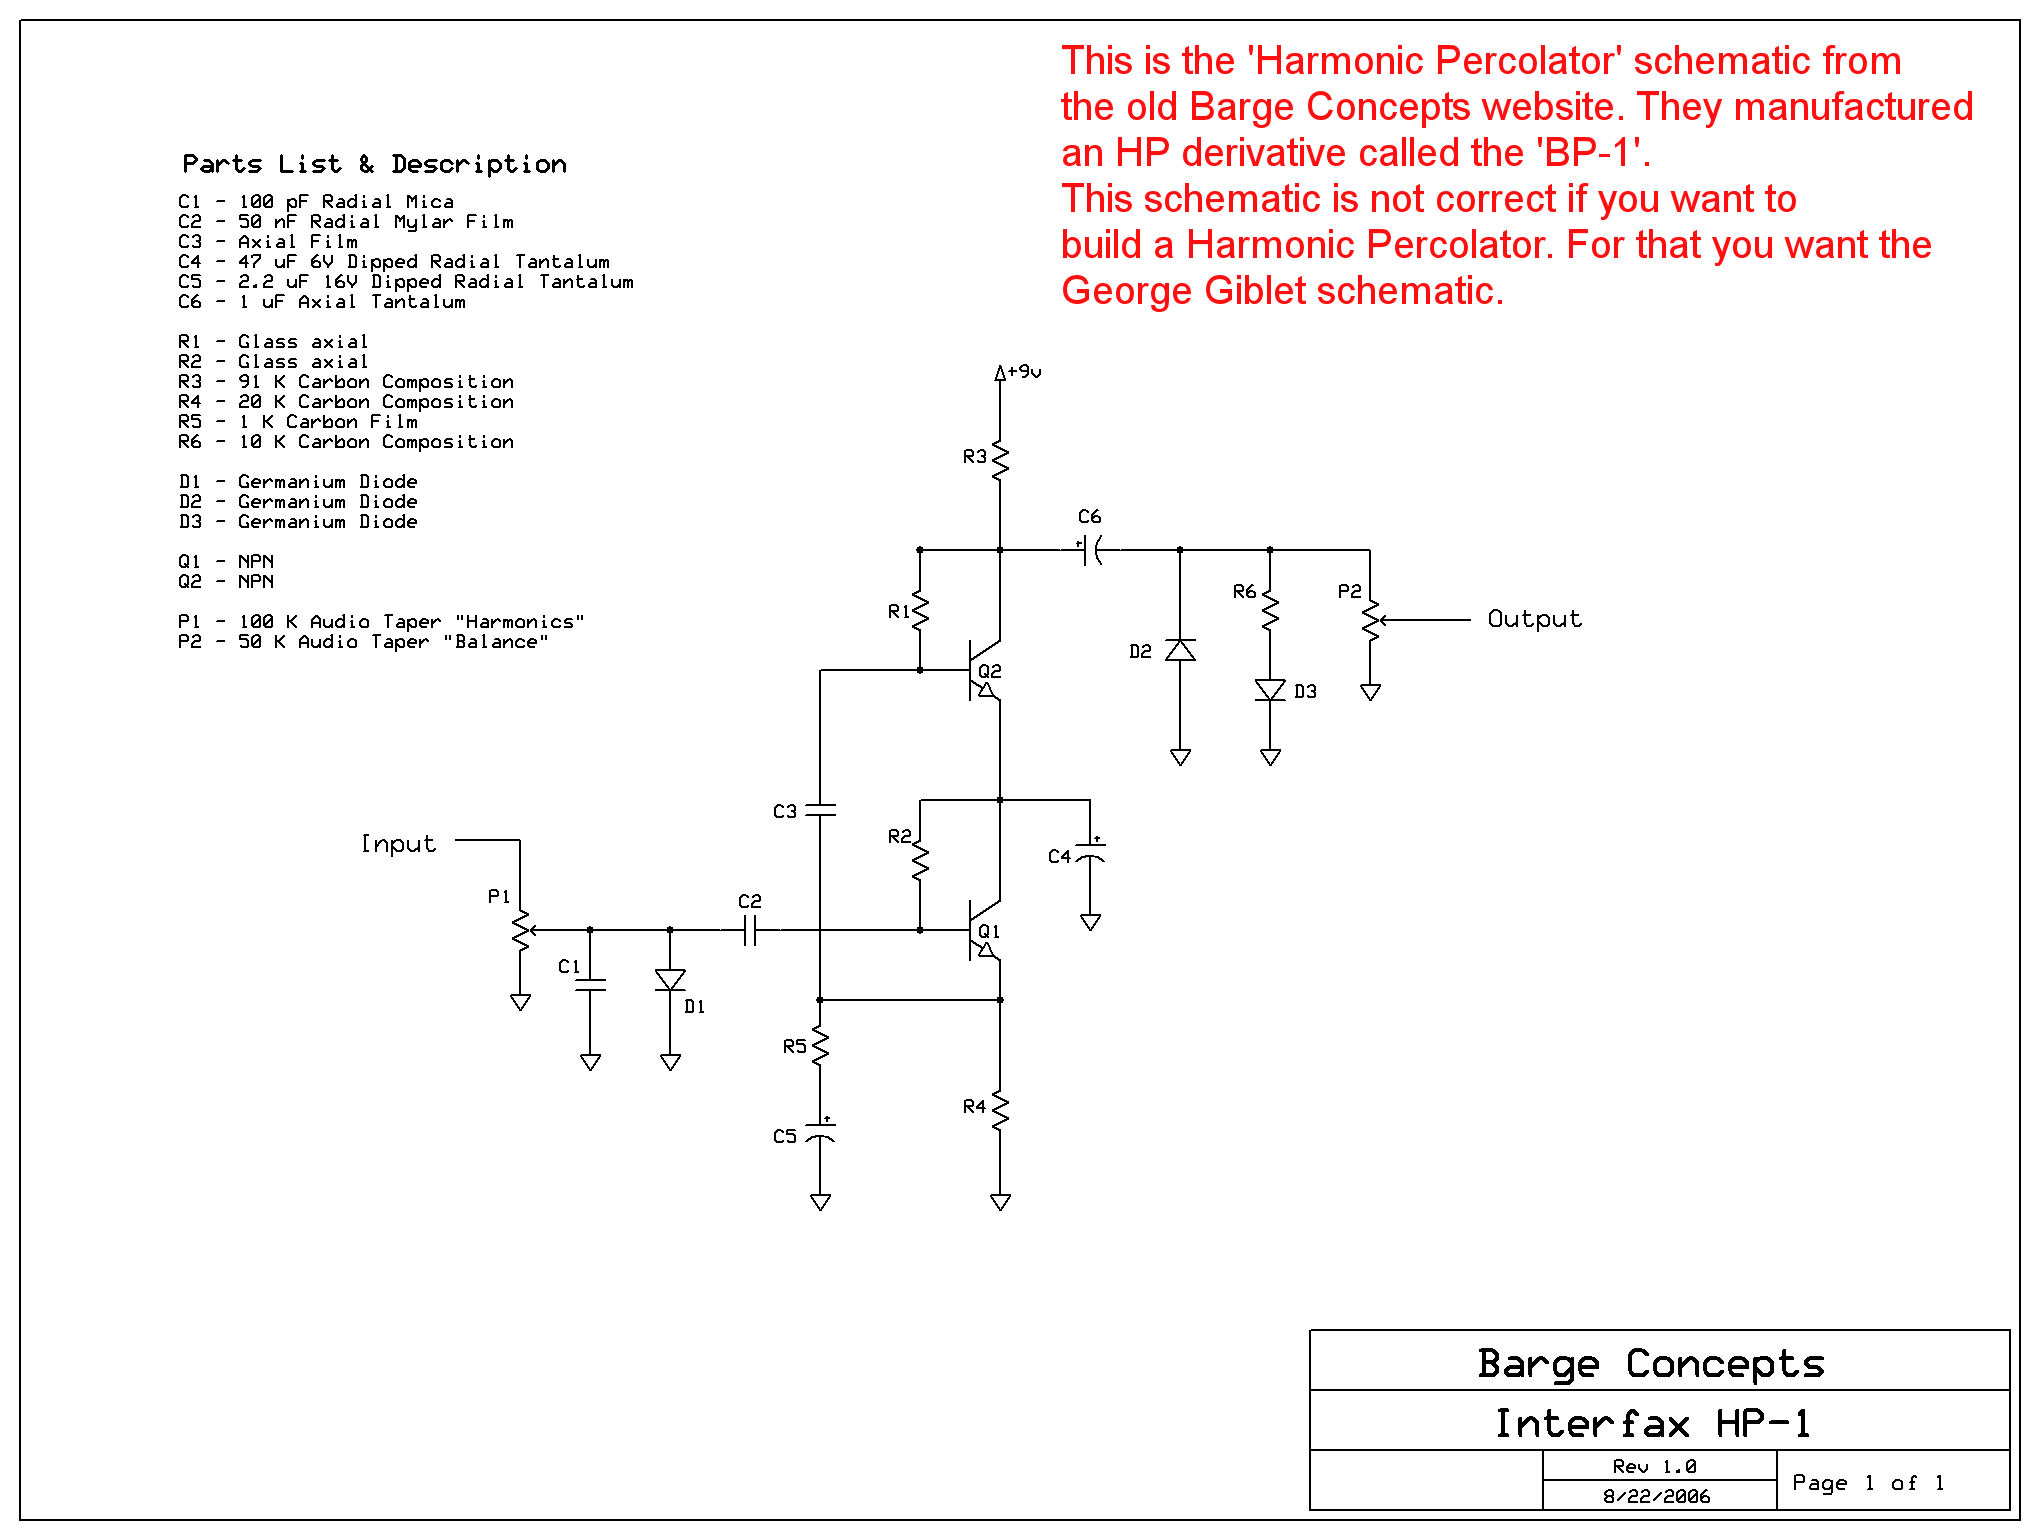 latching relay wiring diagram e bike controller barge concepts 'harmonic percolator' schematic| fredric website